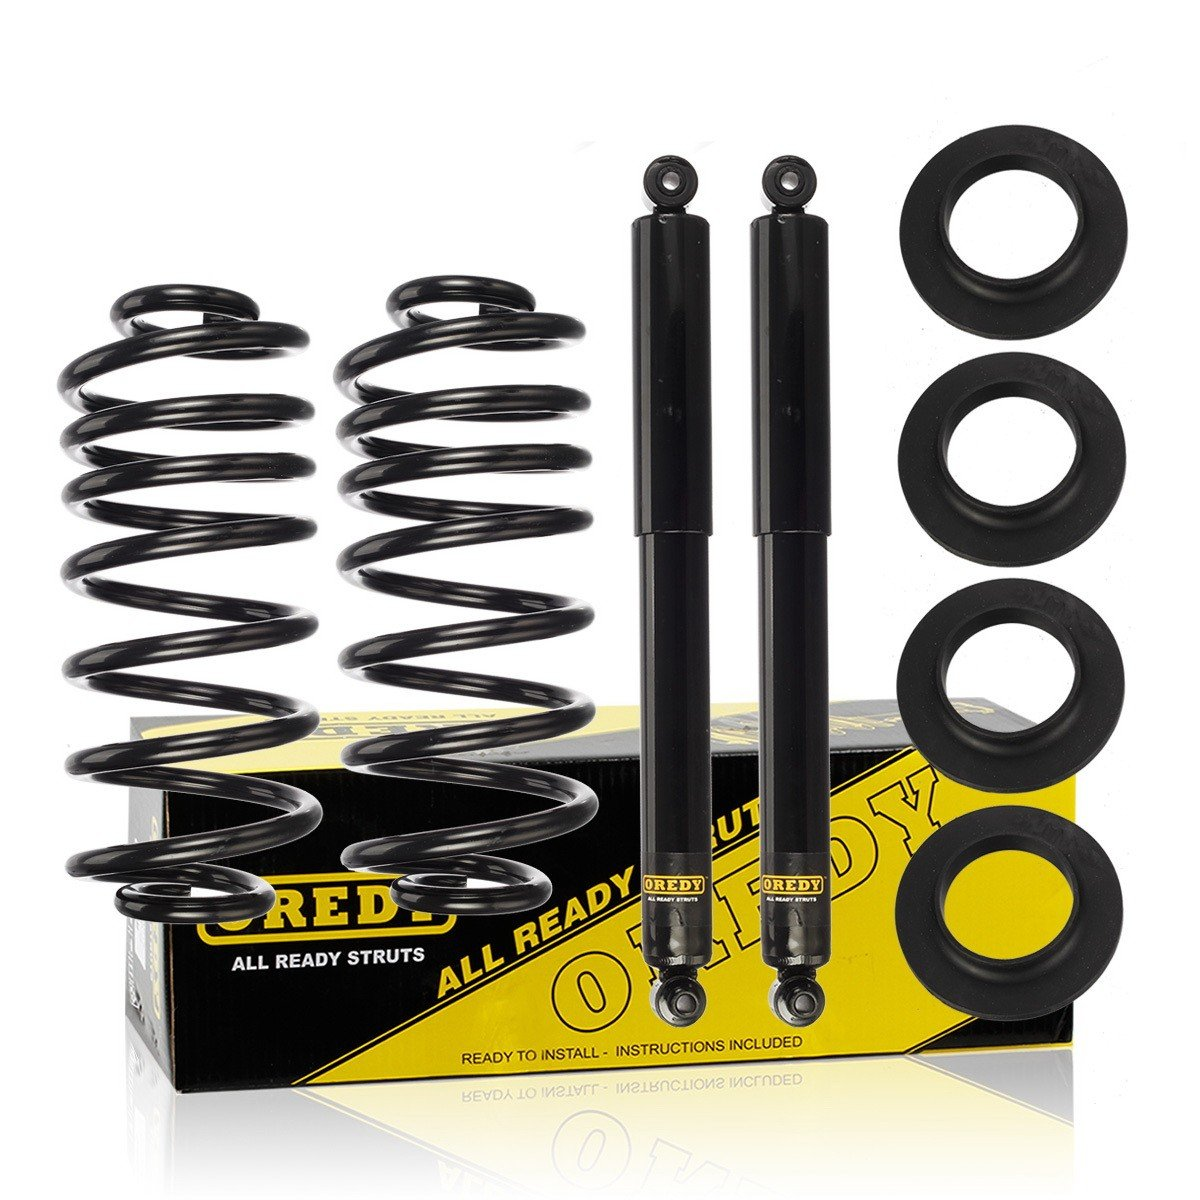 Gmc Envoy Air Suspension Conversion Rear Oredy To Coil Spring For Kit Automotive 1200x1200